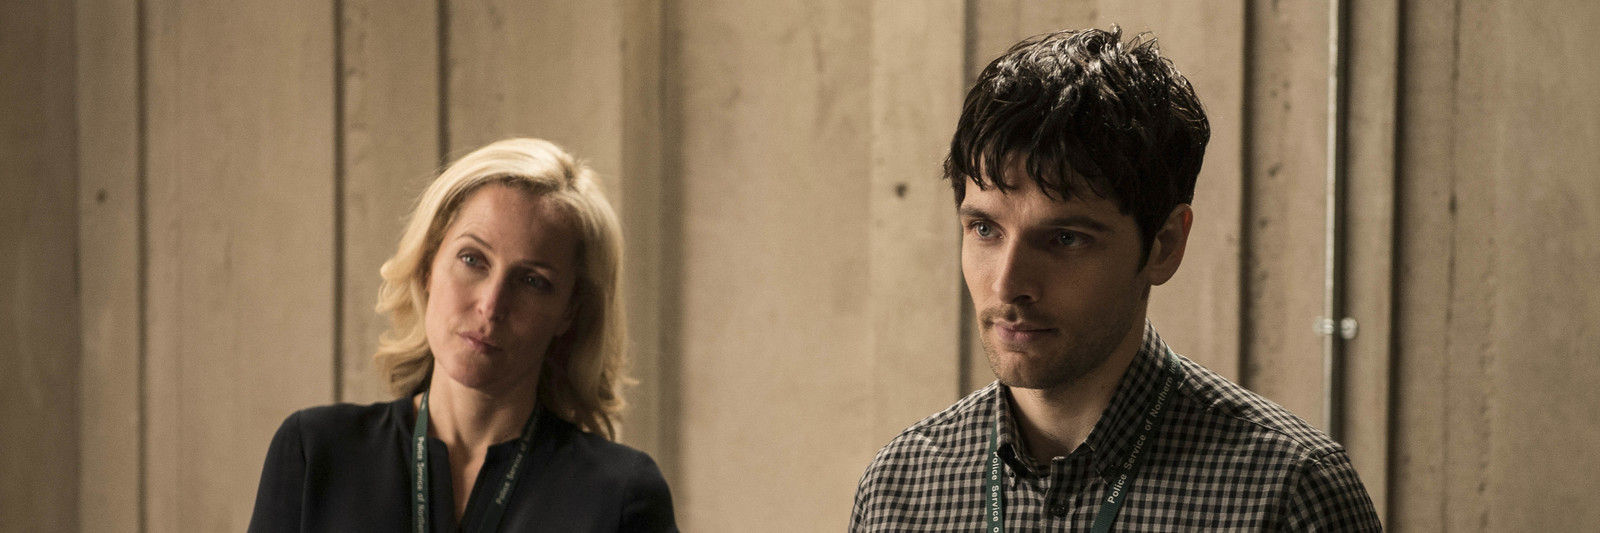 27 the fall season 3 high res ep305 img10 006 pre